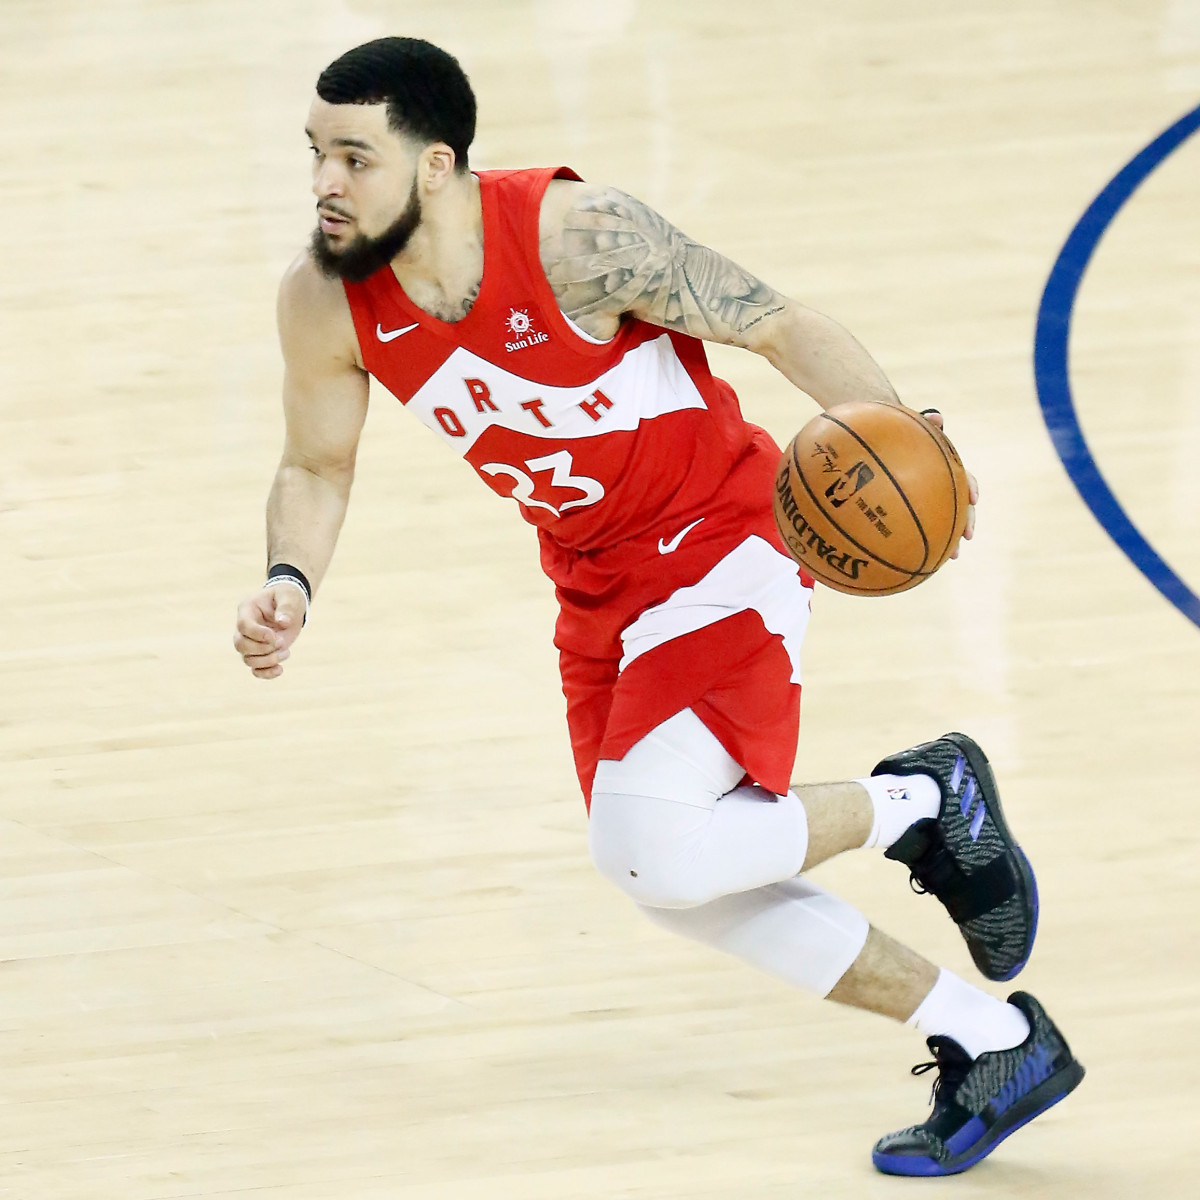 Photo of Fred Van Vleet, 2018-2019 season